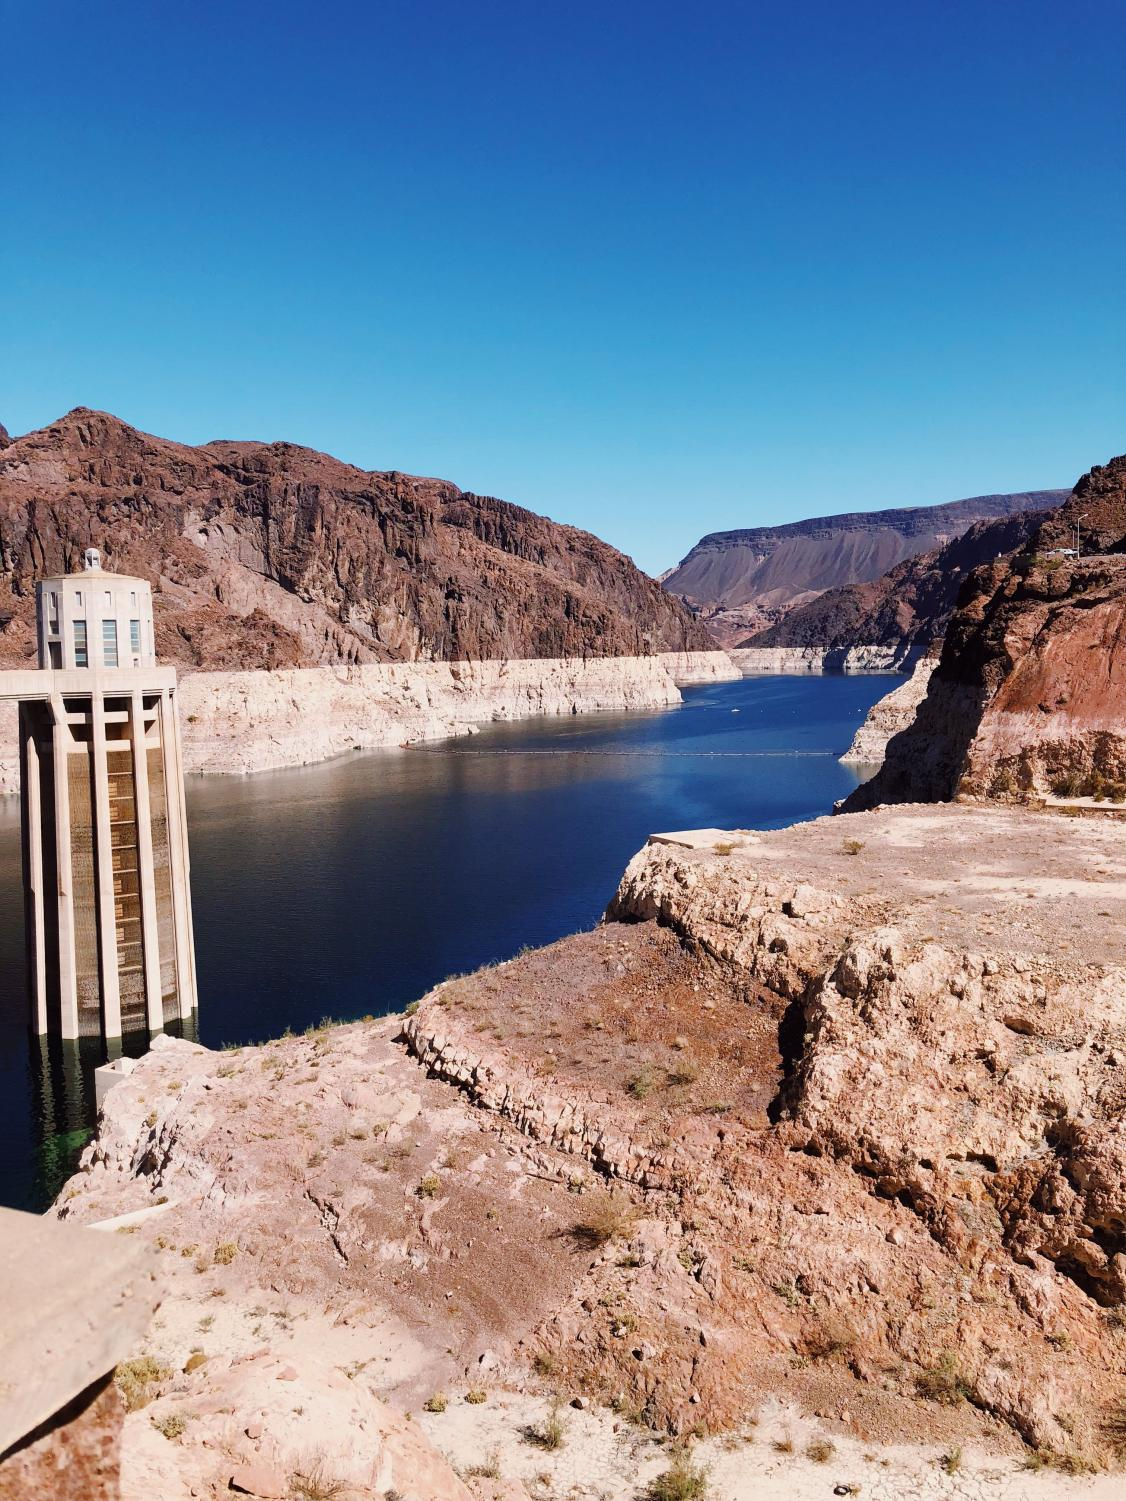 Life-line+of+the+desert.+The+Hoover+Dam+blocks+the+Colorado+River.+This+provides+%22at+least+4+billion+Kilowatt+hours+to+Nevada%2C+Arizona%2C+and+California-+Enough+to+serve+1.3+million+people%2C+According+to+the+Beuaru+of+Reclamation.